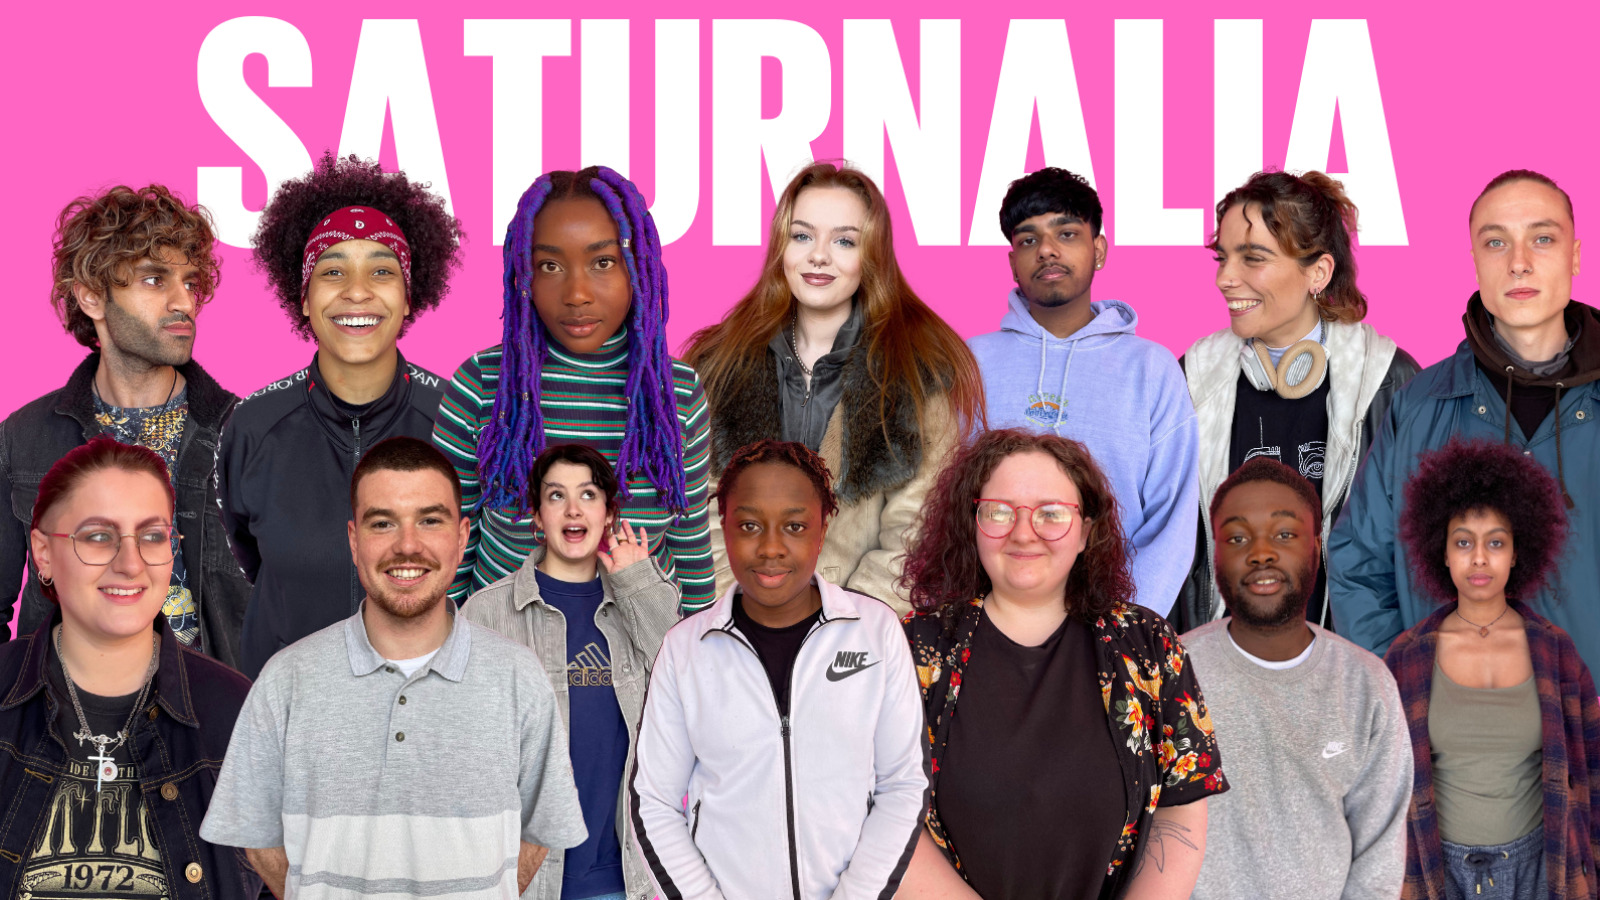 The cast of Saturnalia against a pink backdrop